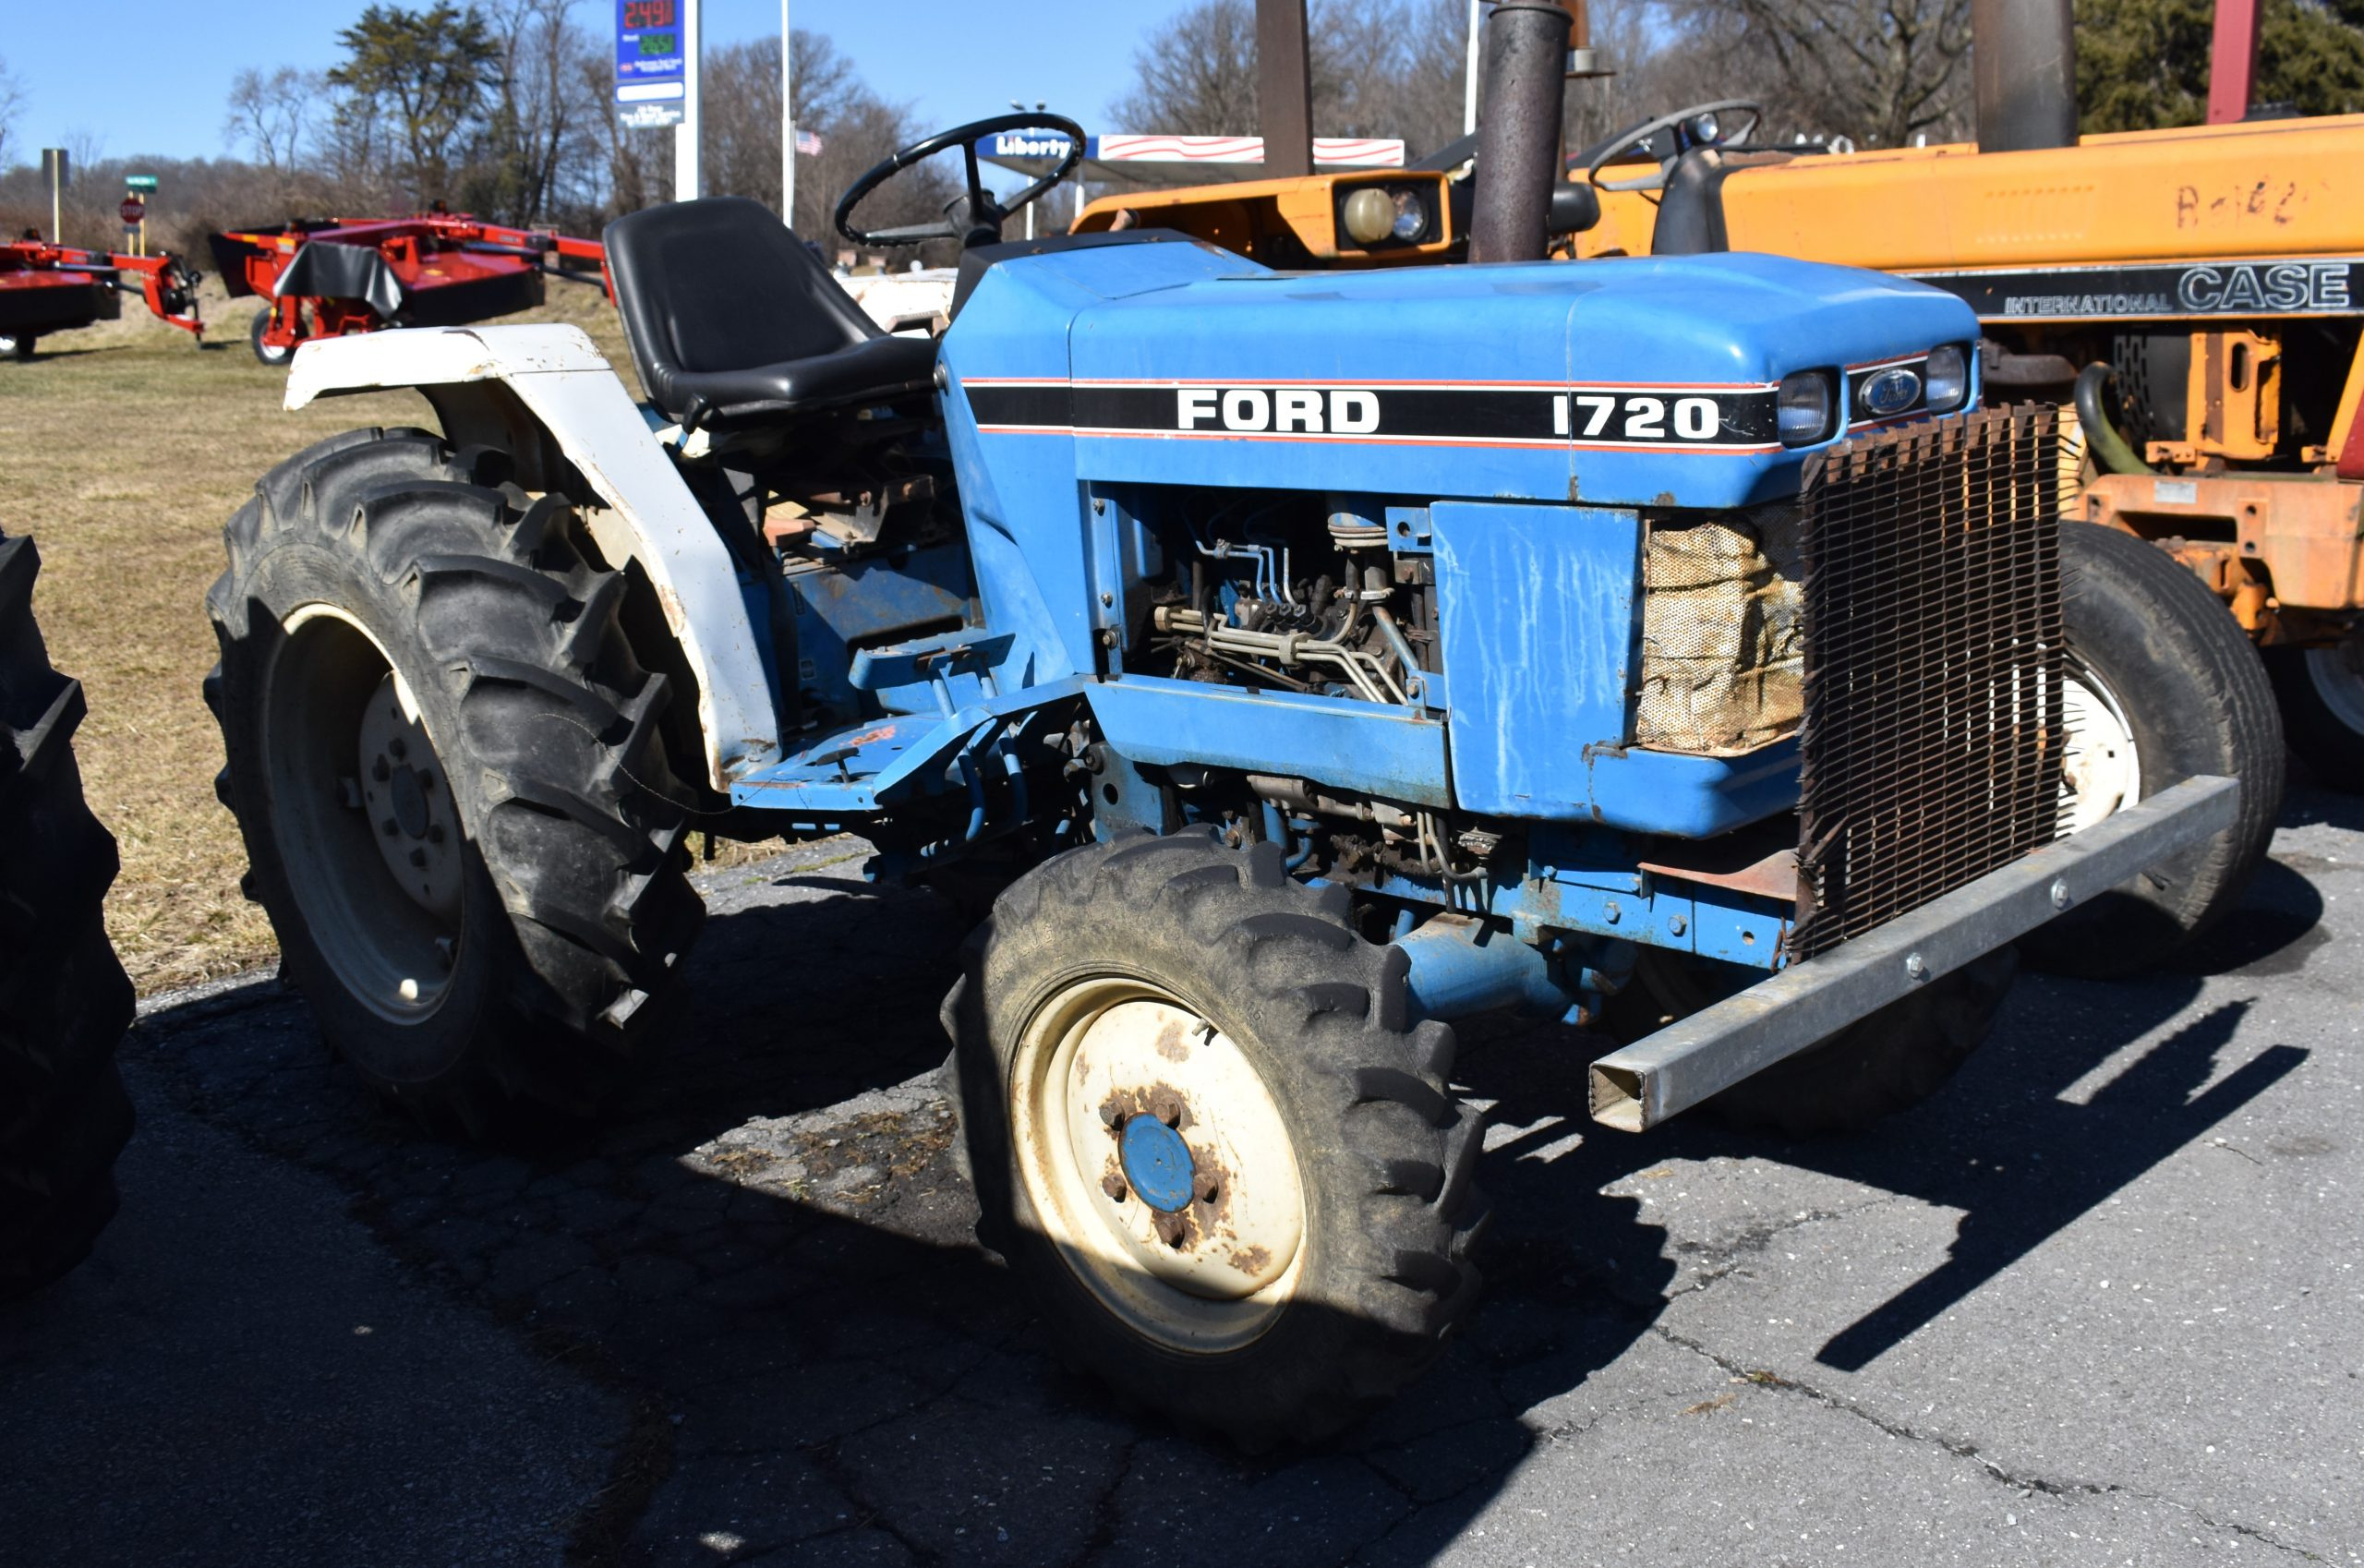 Ford 1720 Image